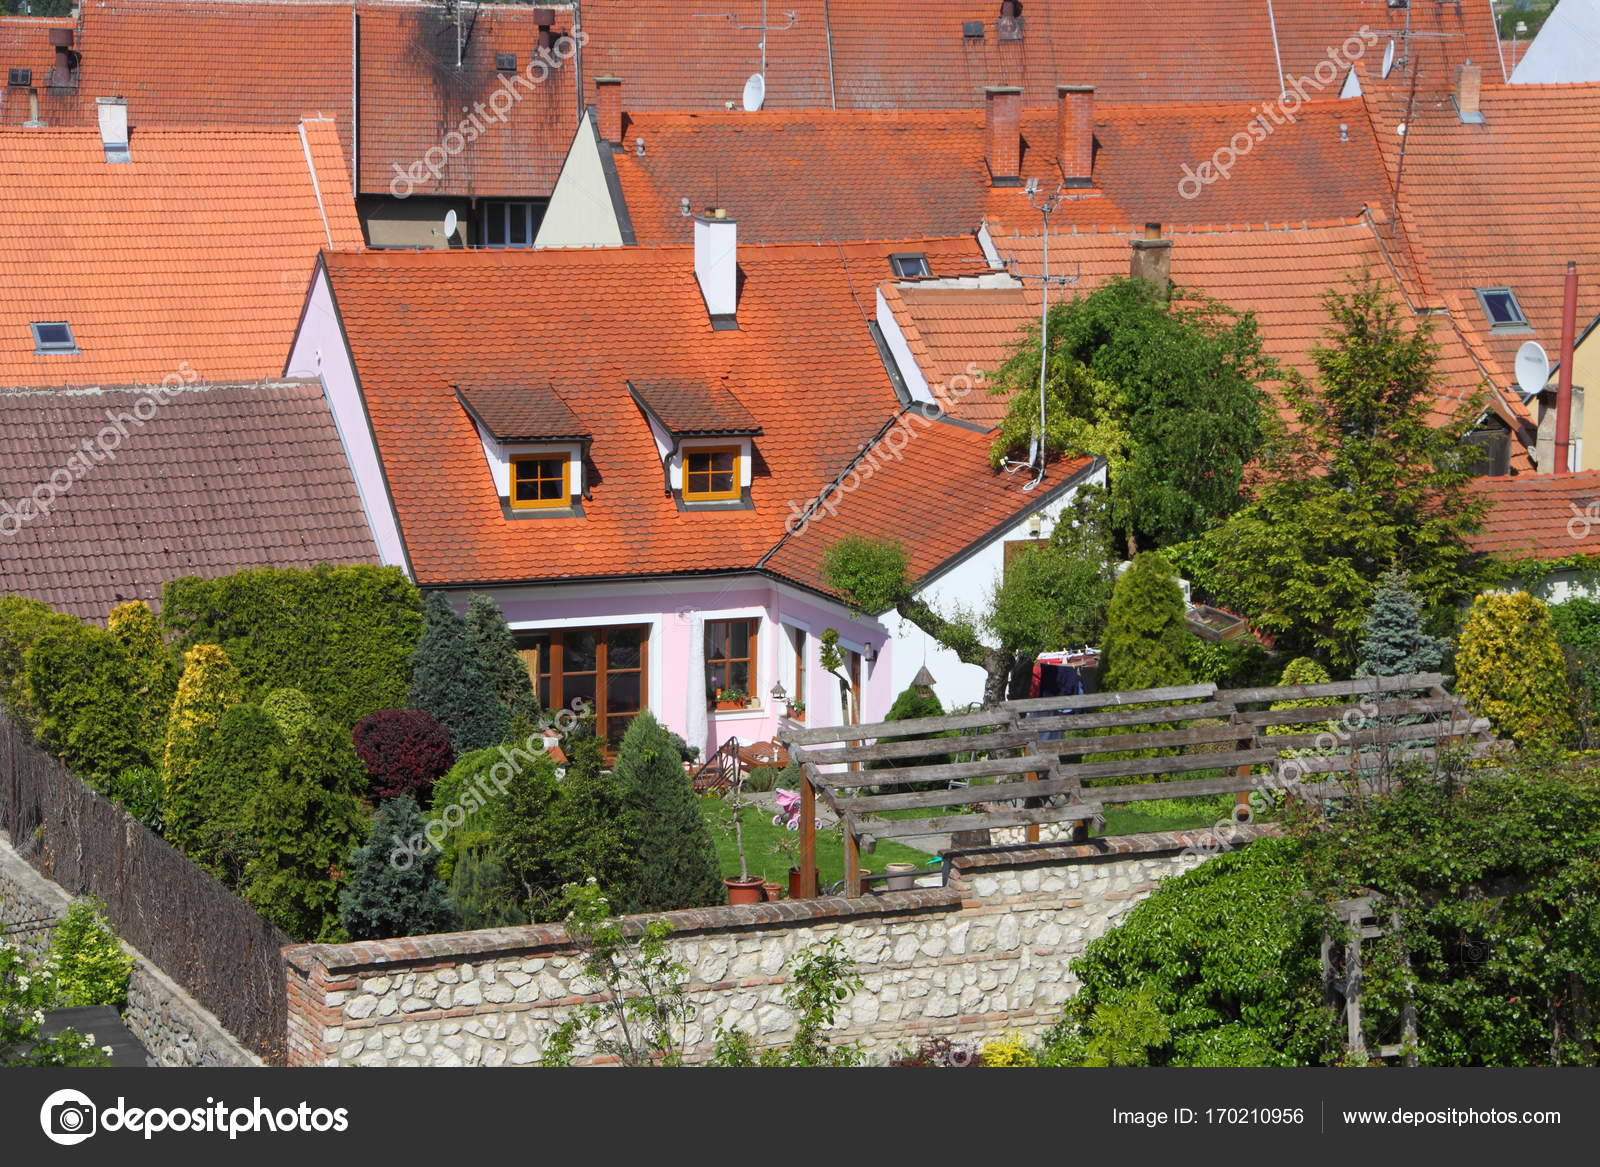 depositphotos stock photo detail od small red roofed